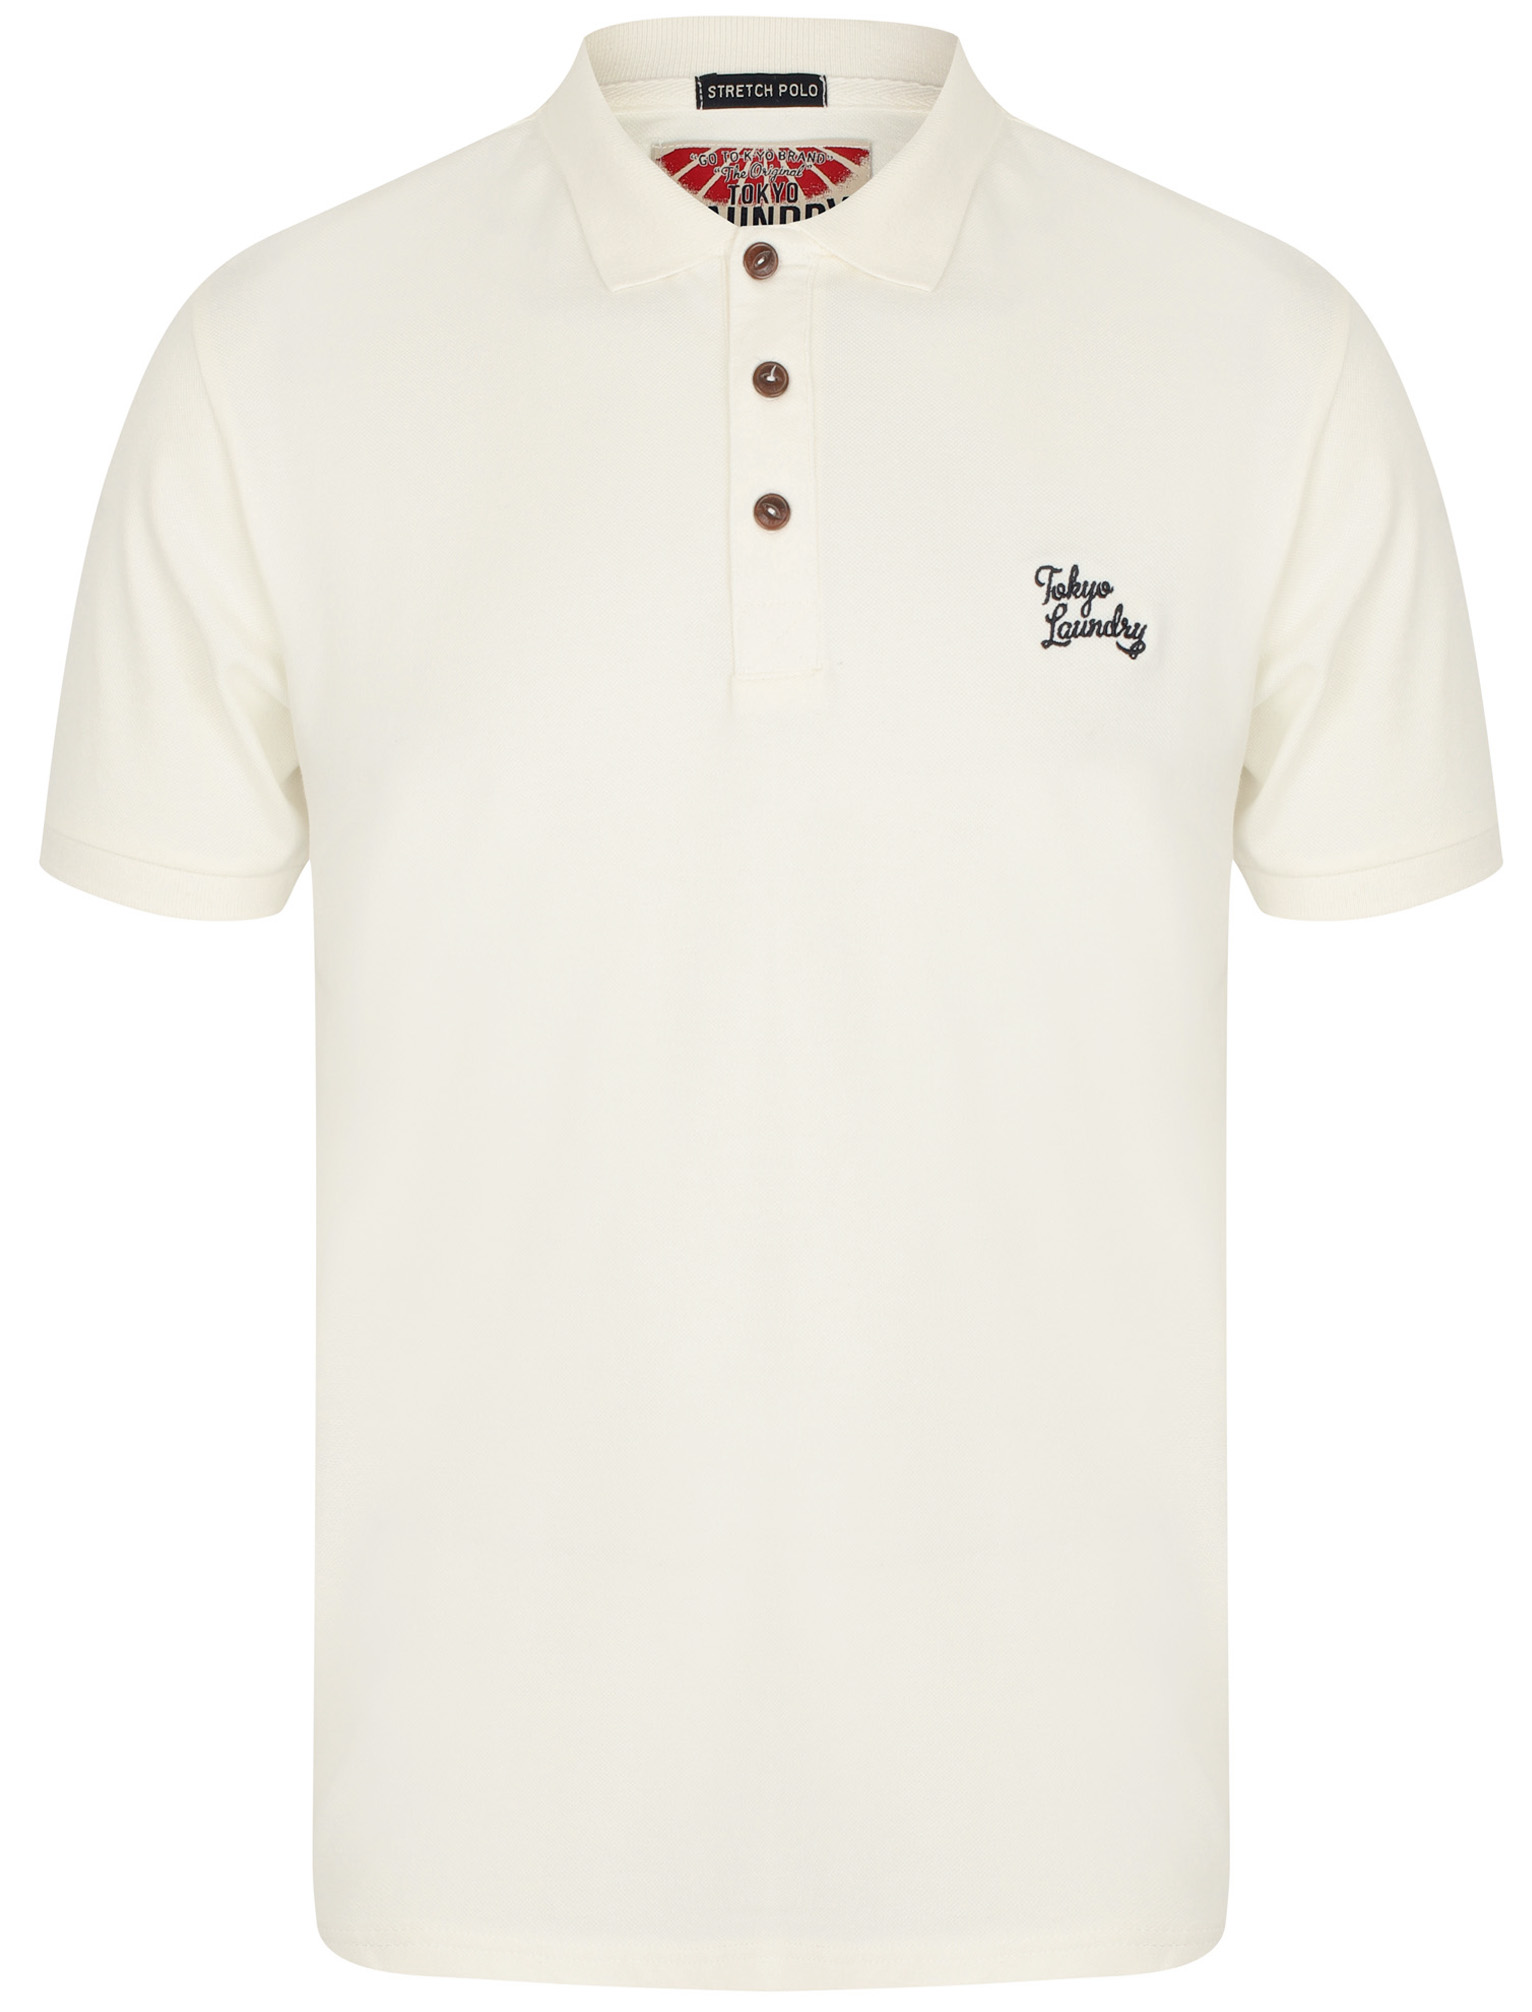 Mens-Tokyo-Laundry-Cotton-Classic-Casual-Short-Sleeve-Polo-Shirt-Top-Size-S-XXL thumbnail 5